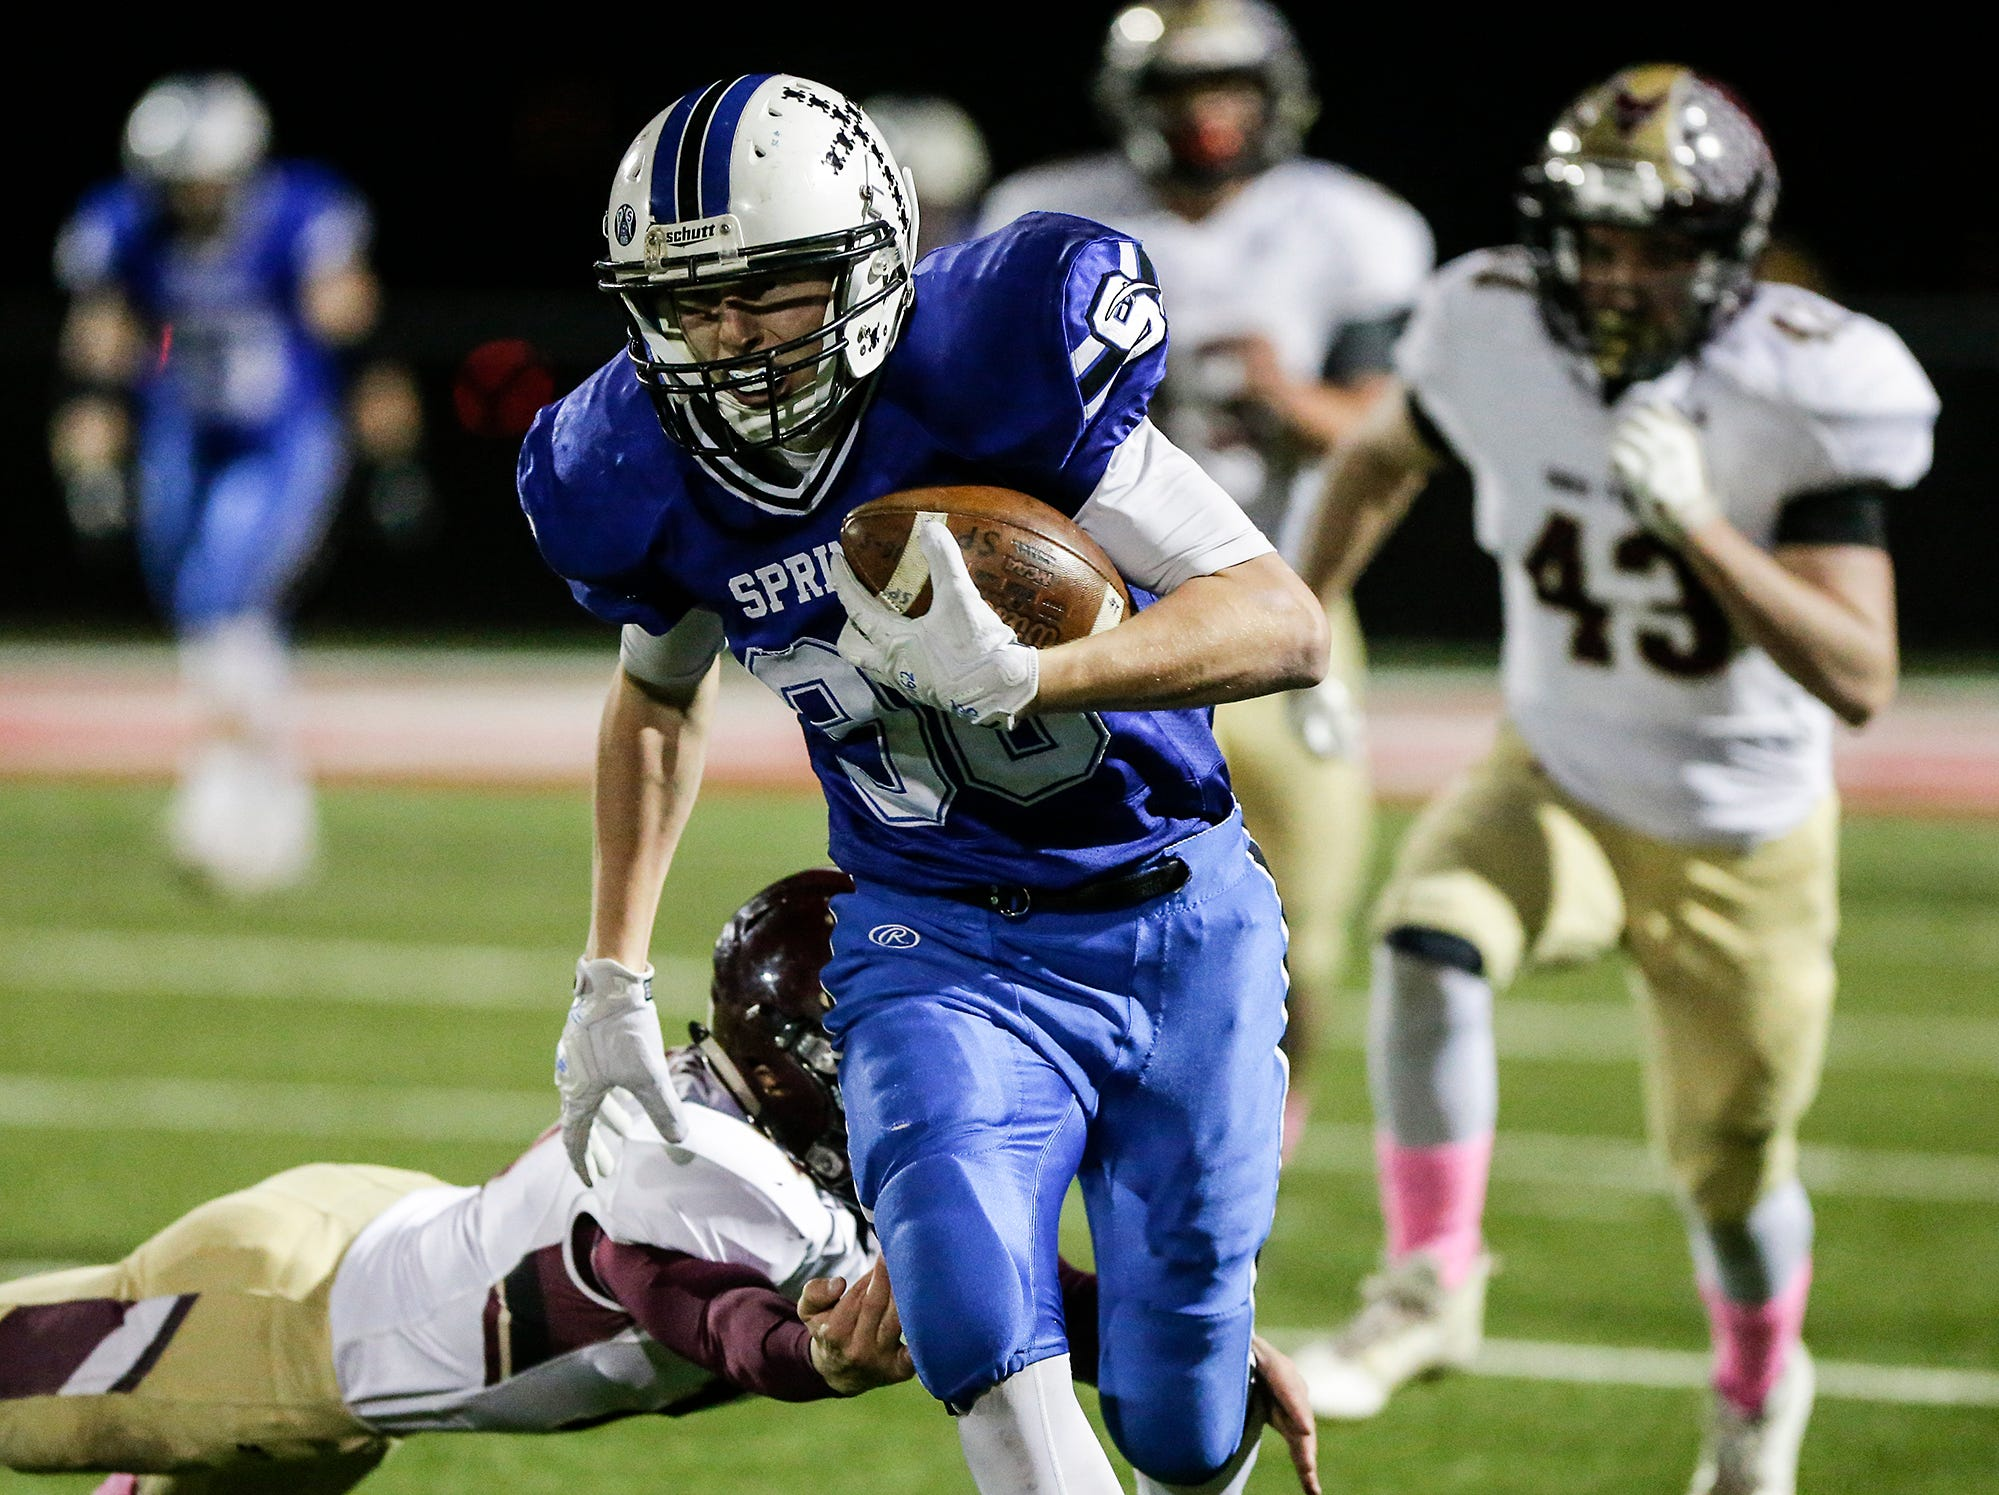 St. Mary's Springs Academy football's Ezra Tucker breaks a tackle from Omro High School's Ben Wellhoefer Friday, October 26, 2018 during their WIAA division five, level 2 playoff game played in Lomira, Wisconsin. Springs won the match-up 33-20. Doug Raflik/USA TODAY NETWORK-Wisconsin